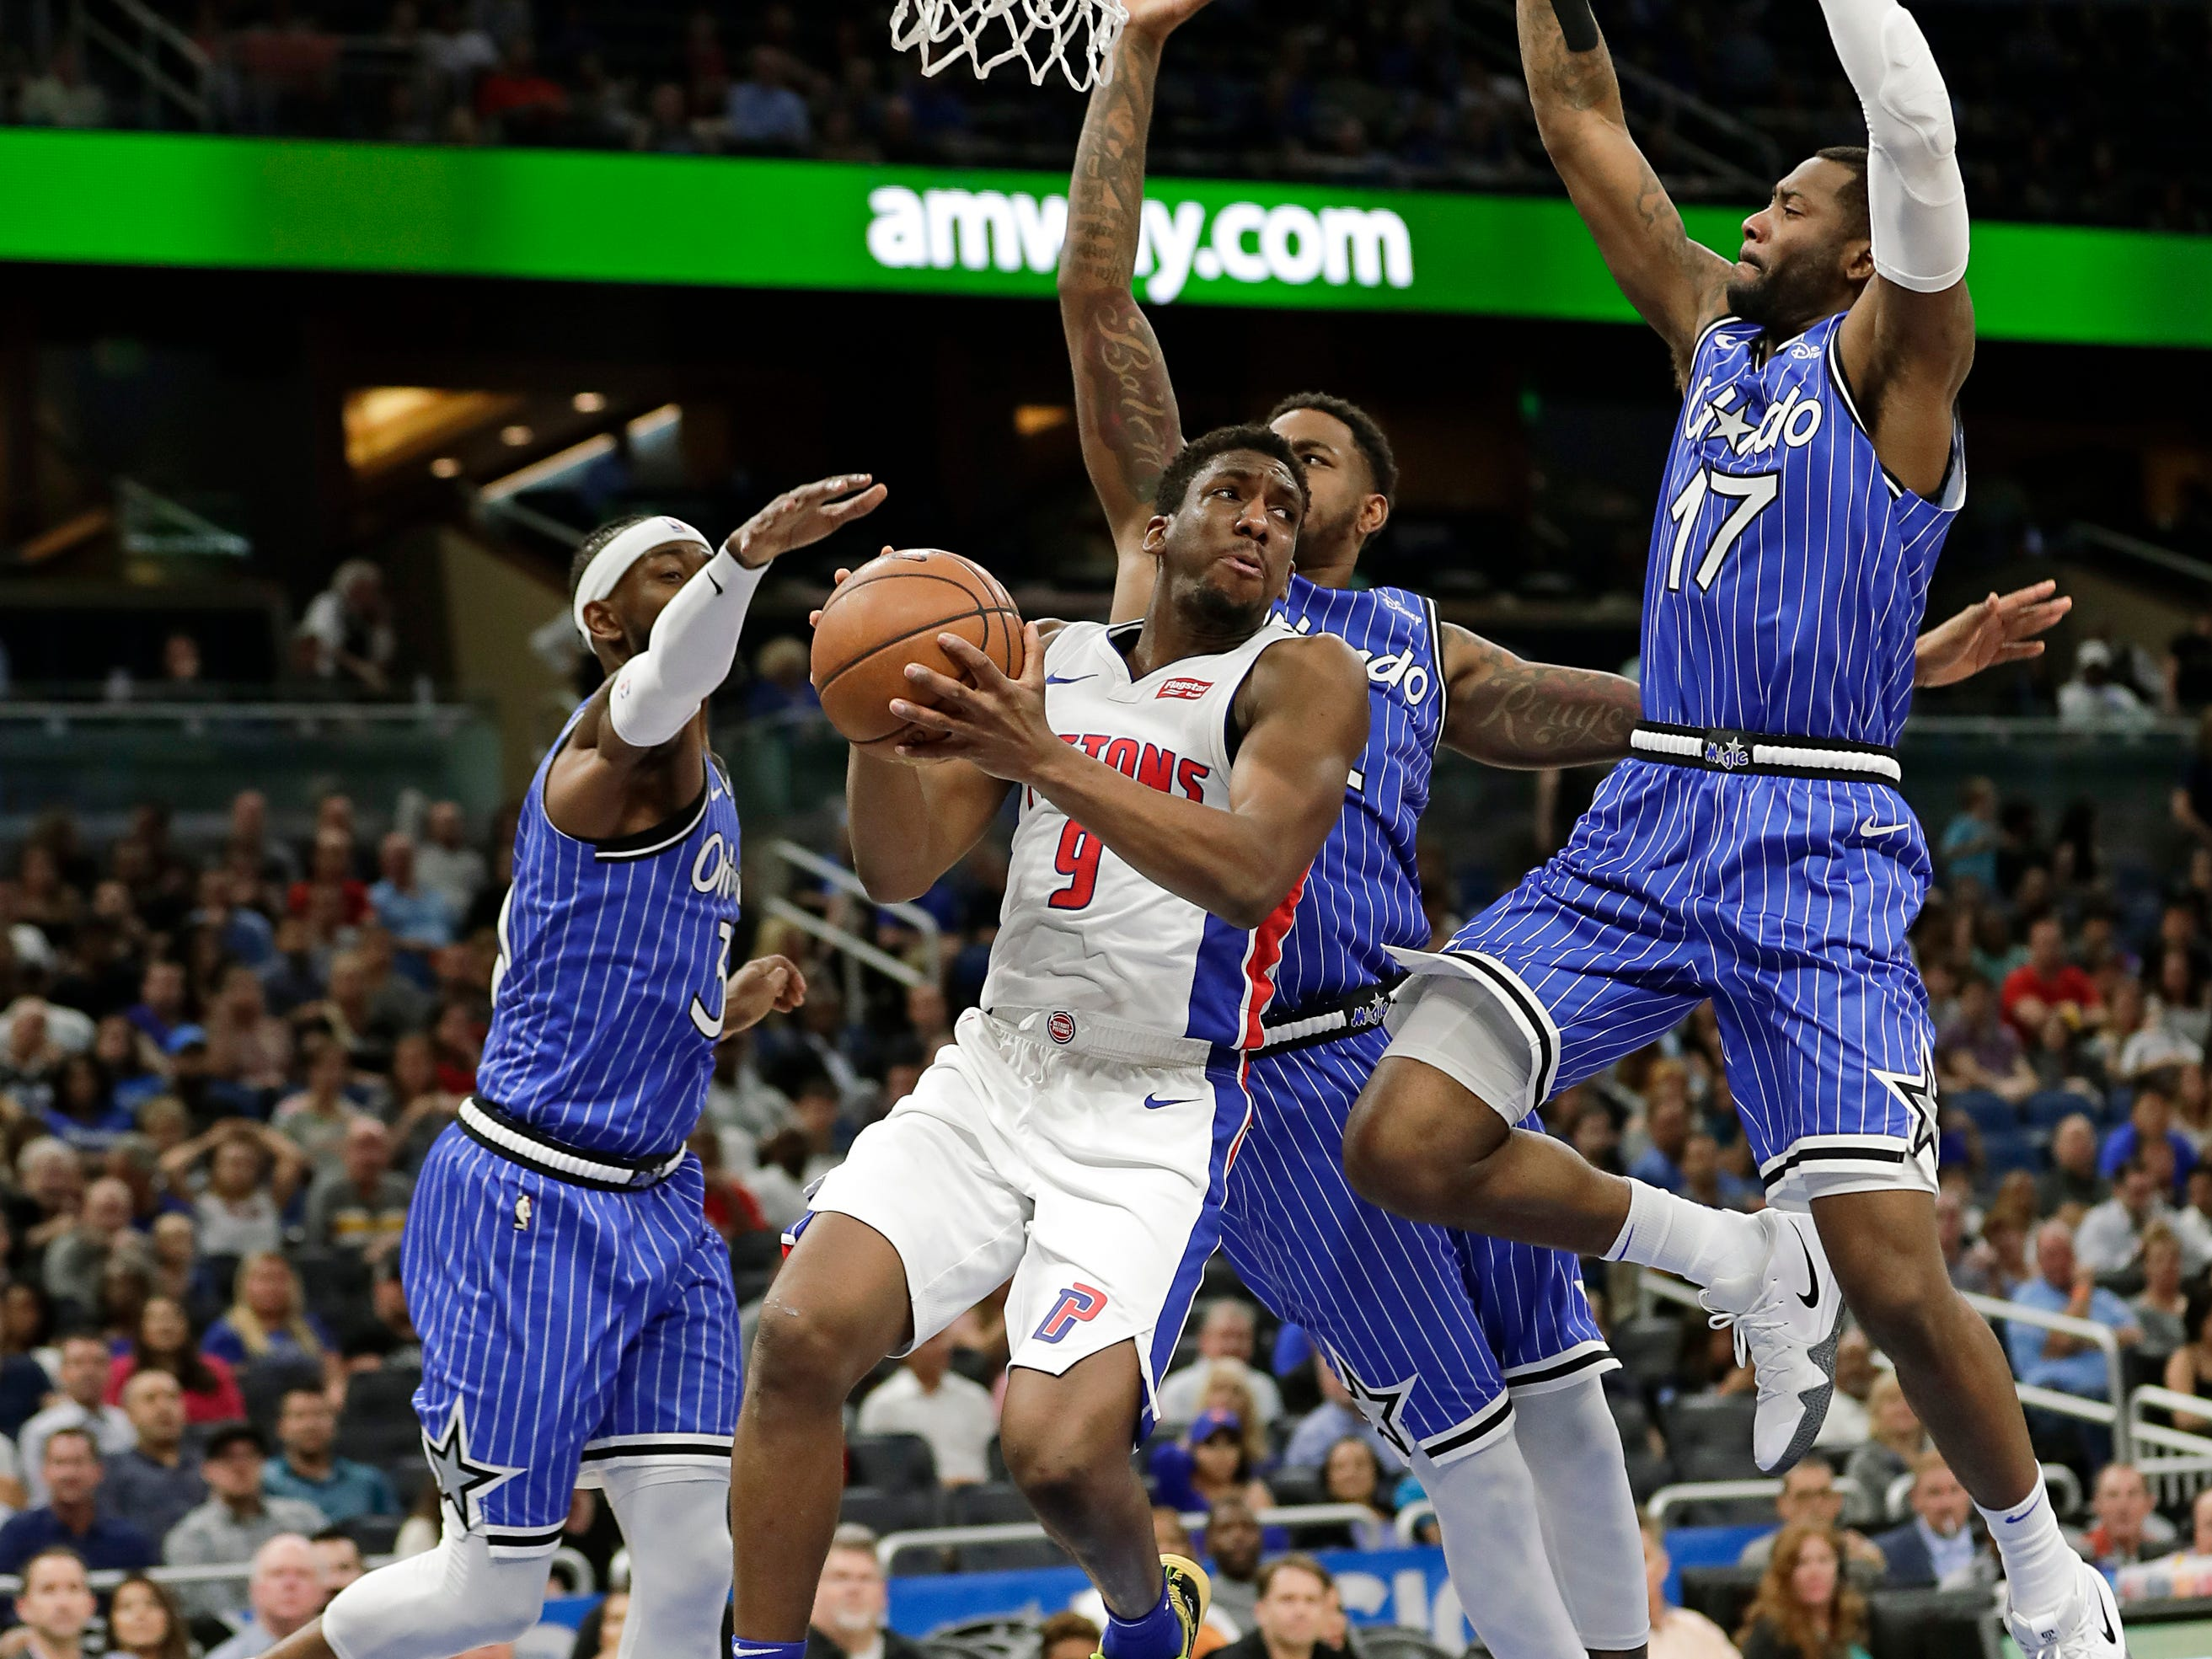 Detroit Pistons' Langston Galloway, center, looks to pass the ball as he is defended by Orlando Magic's Terrence Ross, left, Jarell Martin, second from right, and Jonathon Simmons (17) during the first half of an NBA basketball game, Wednesday, Nov. 7, 2018, in Orlando, Fla.